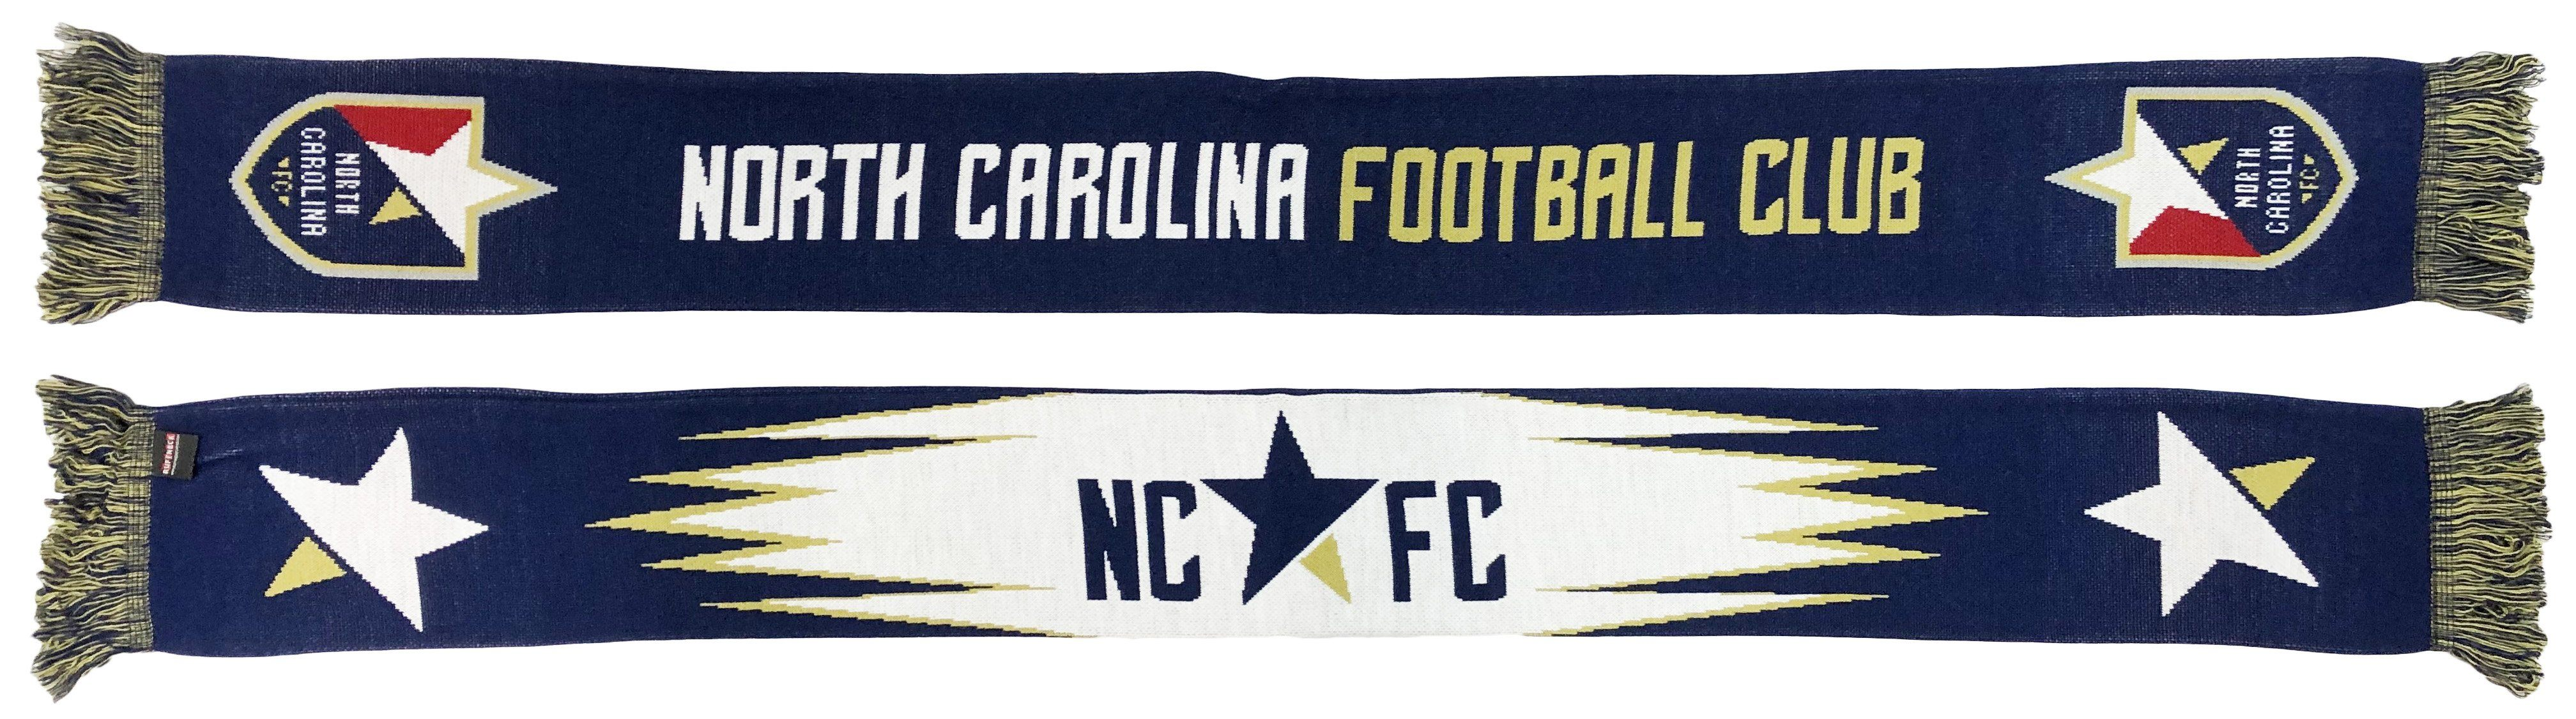 North Carolina FC Scarf - Star